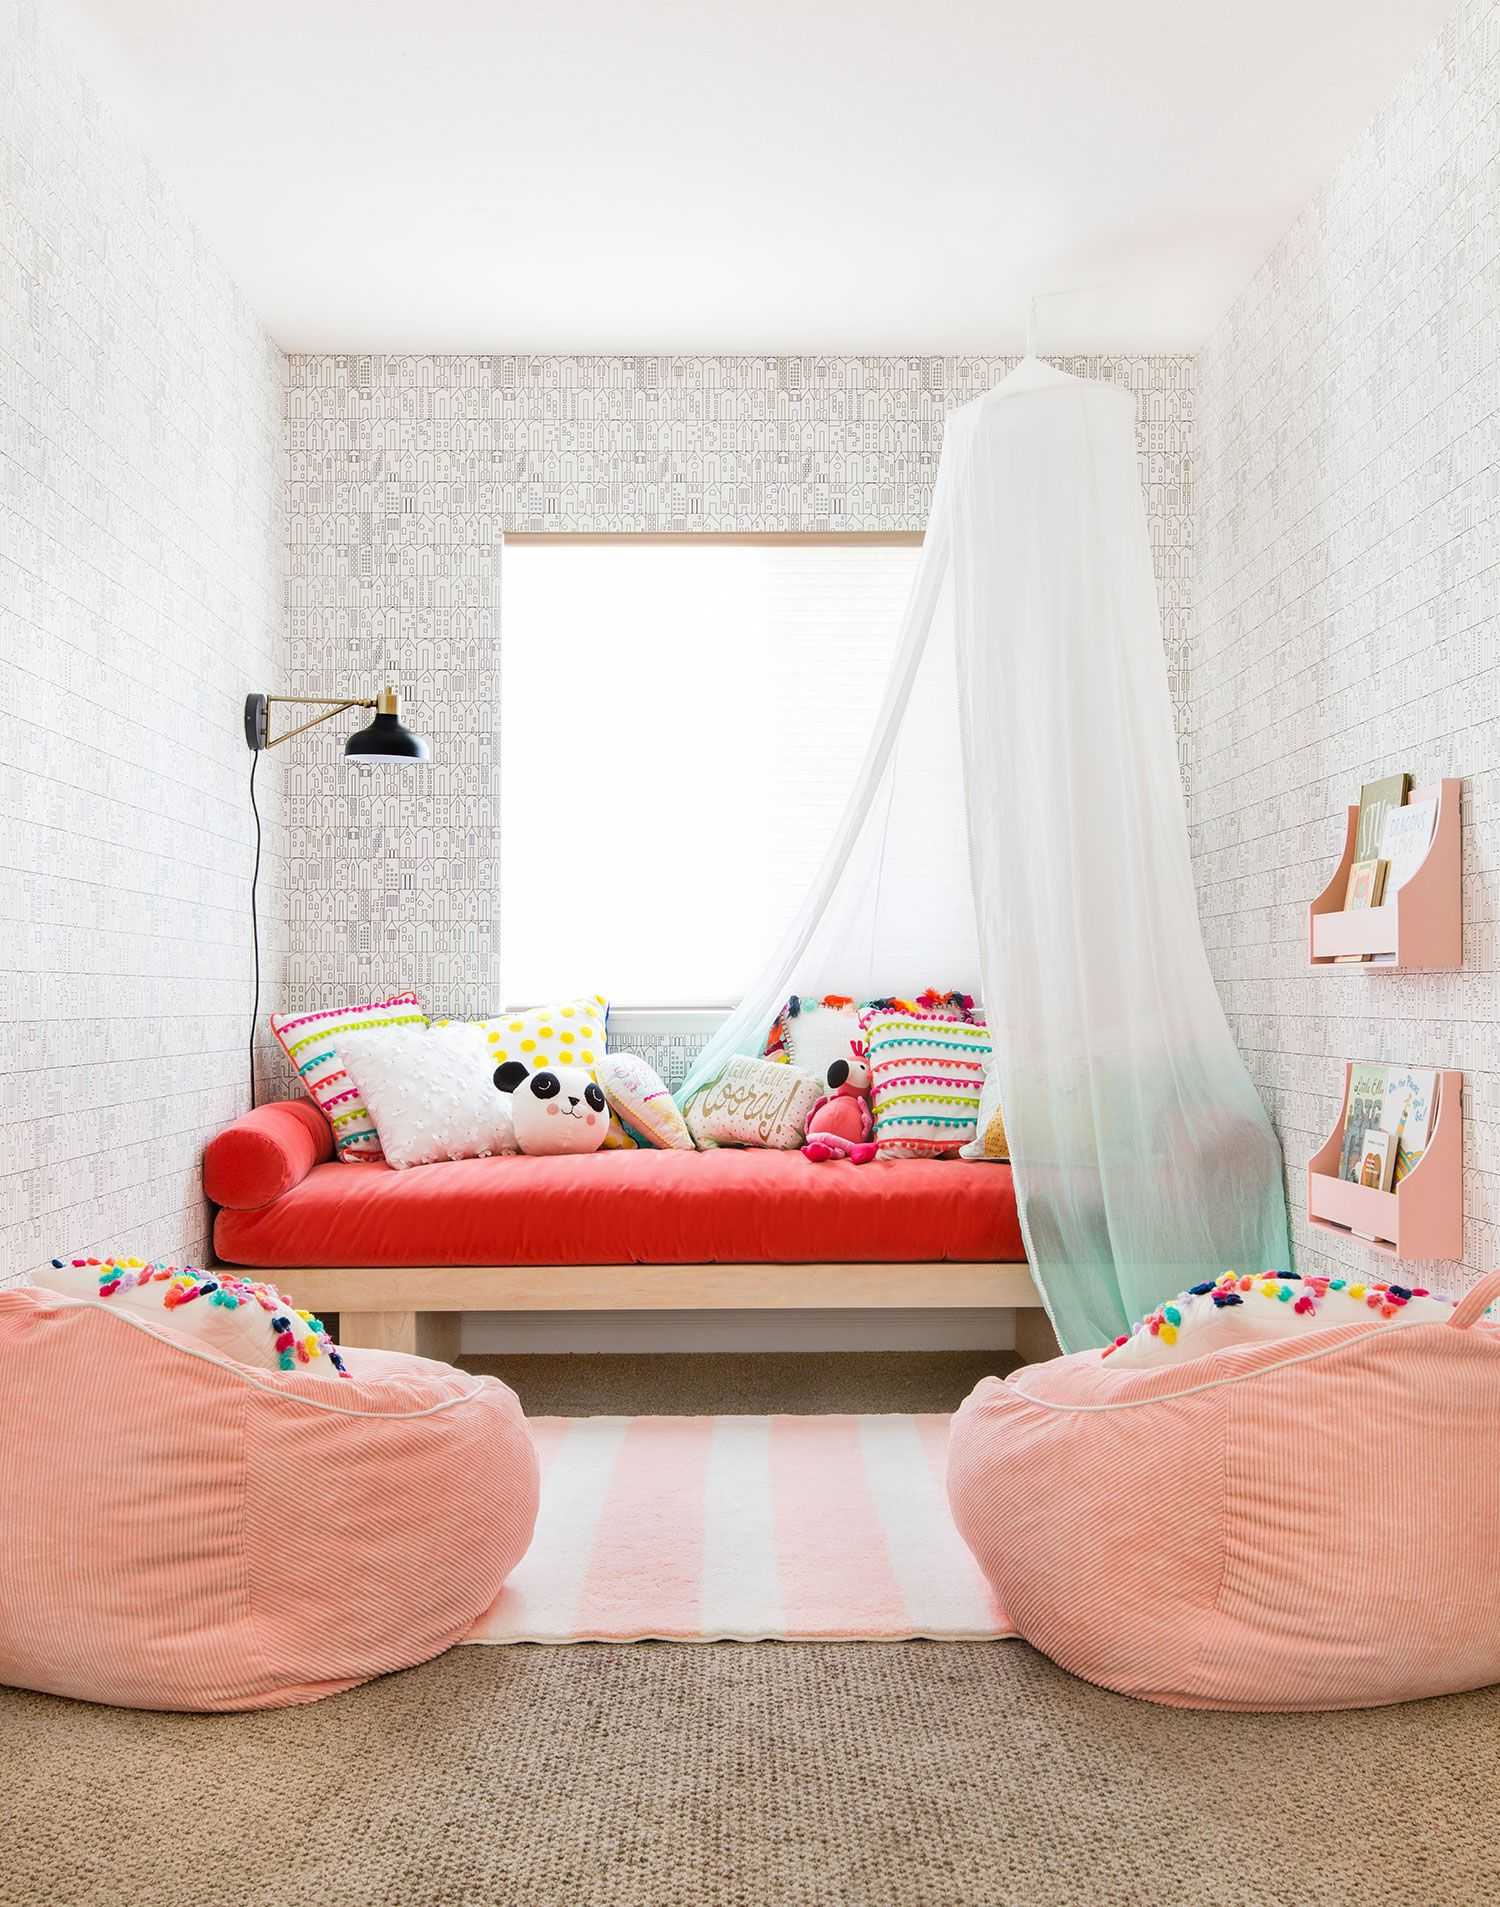 Emily Henderson Transforms A Playroom With The Pillowfort Kids Decor Collection From Target Rue Kid Room Decor Pillow Fort Kids Interior